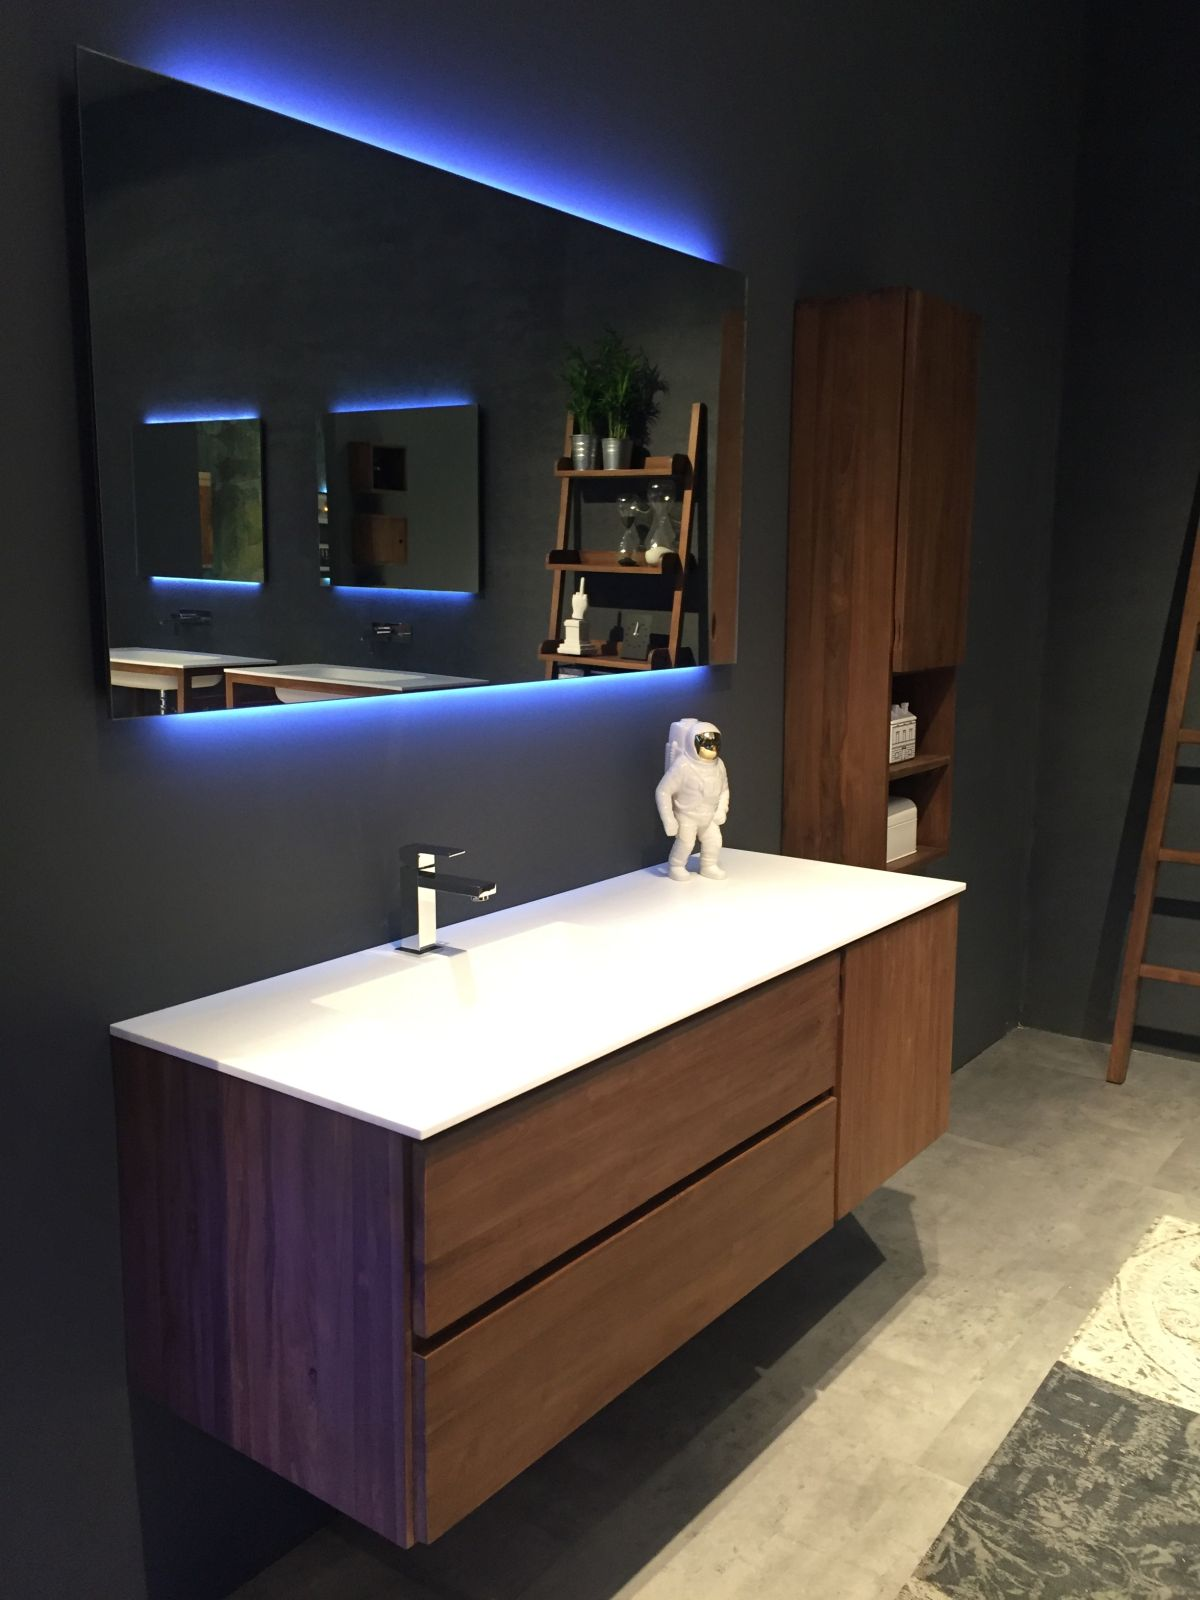 wooden bathroom sink cabinets. Floating Wood Bathroom Vanity Stylish Ways To Decorate With Modern Bathroom Vanities